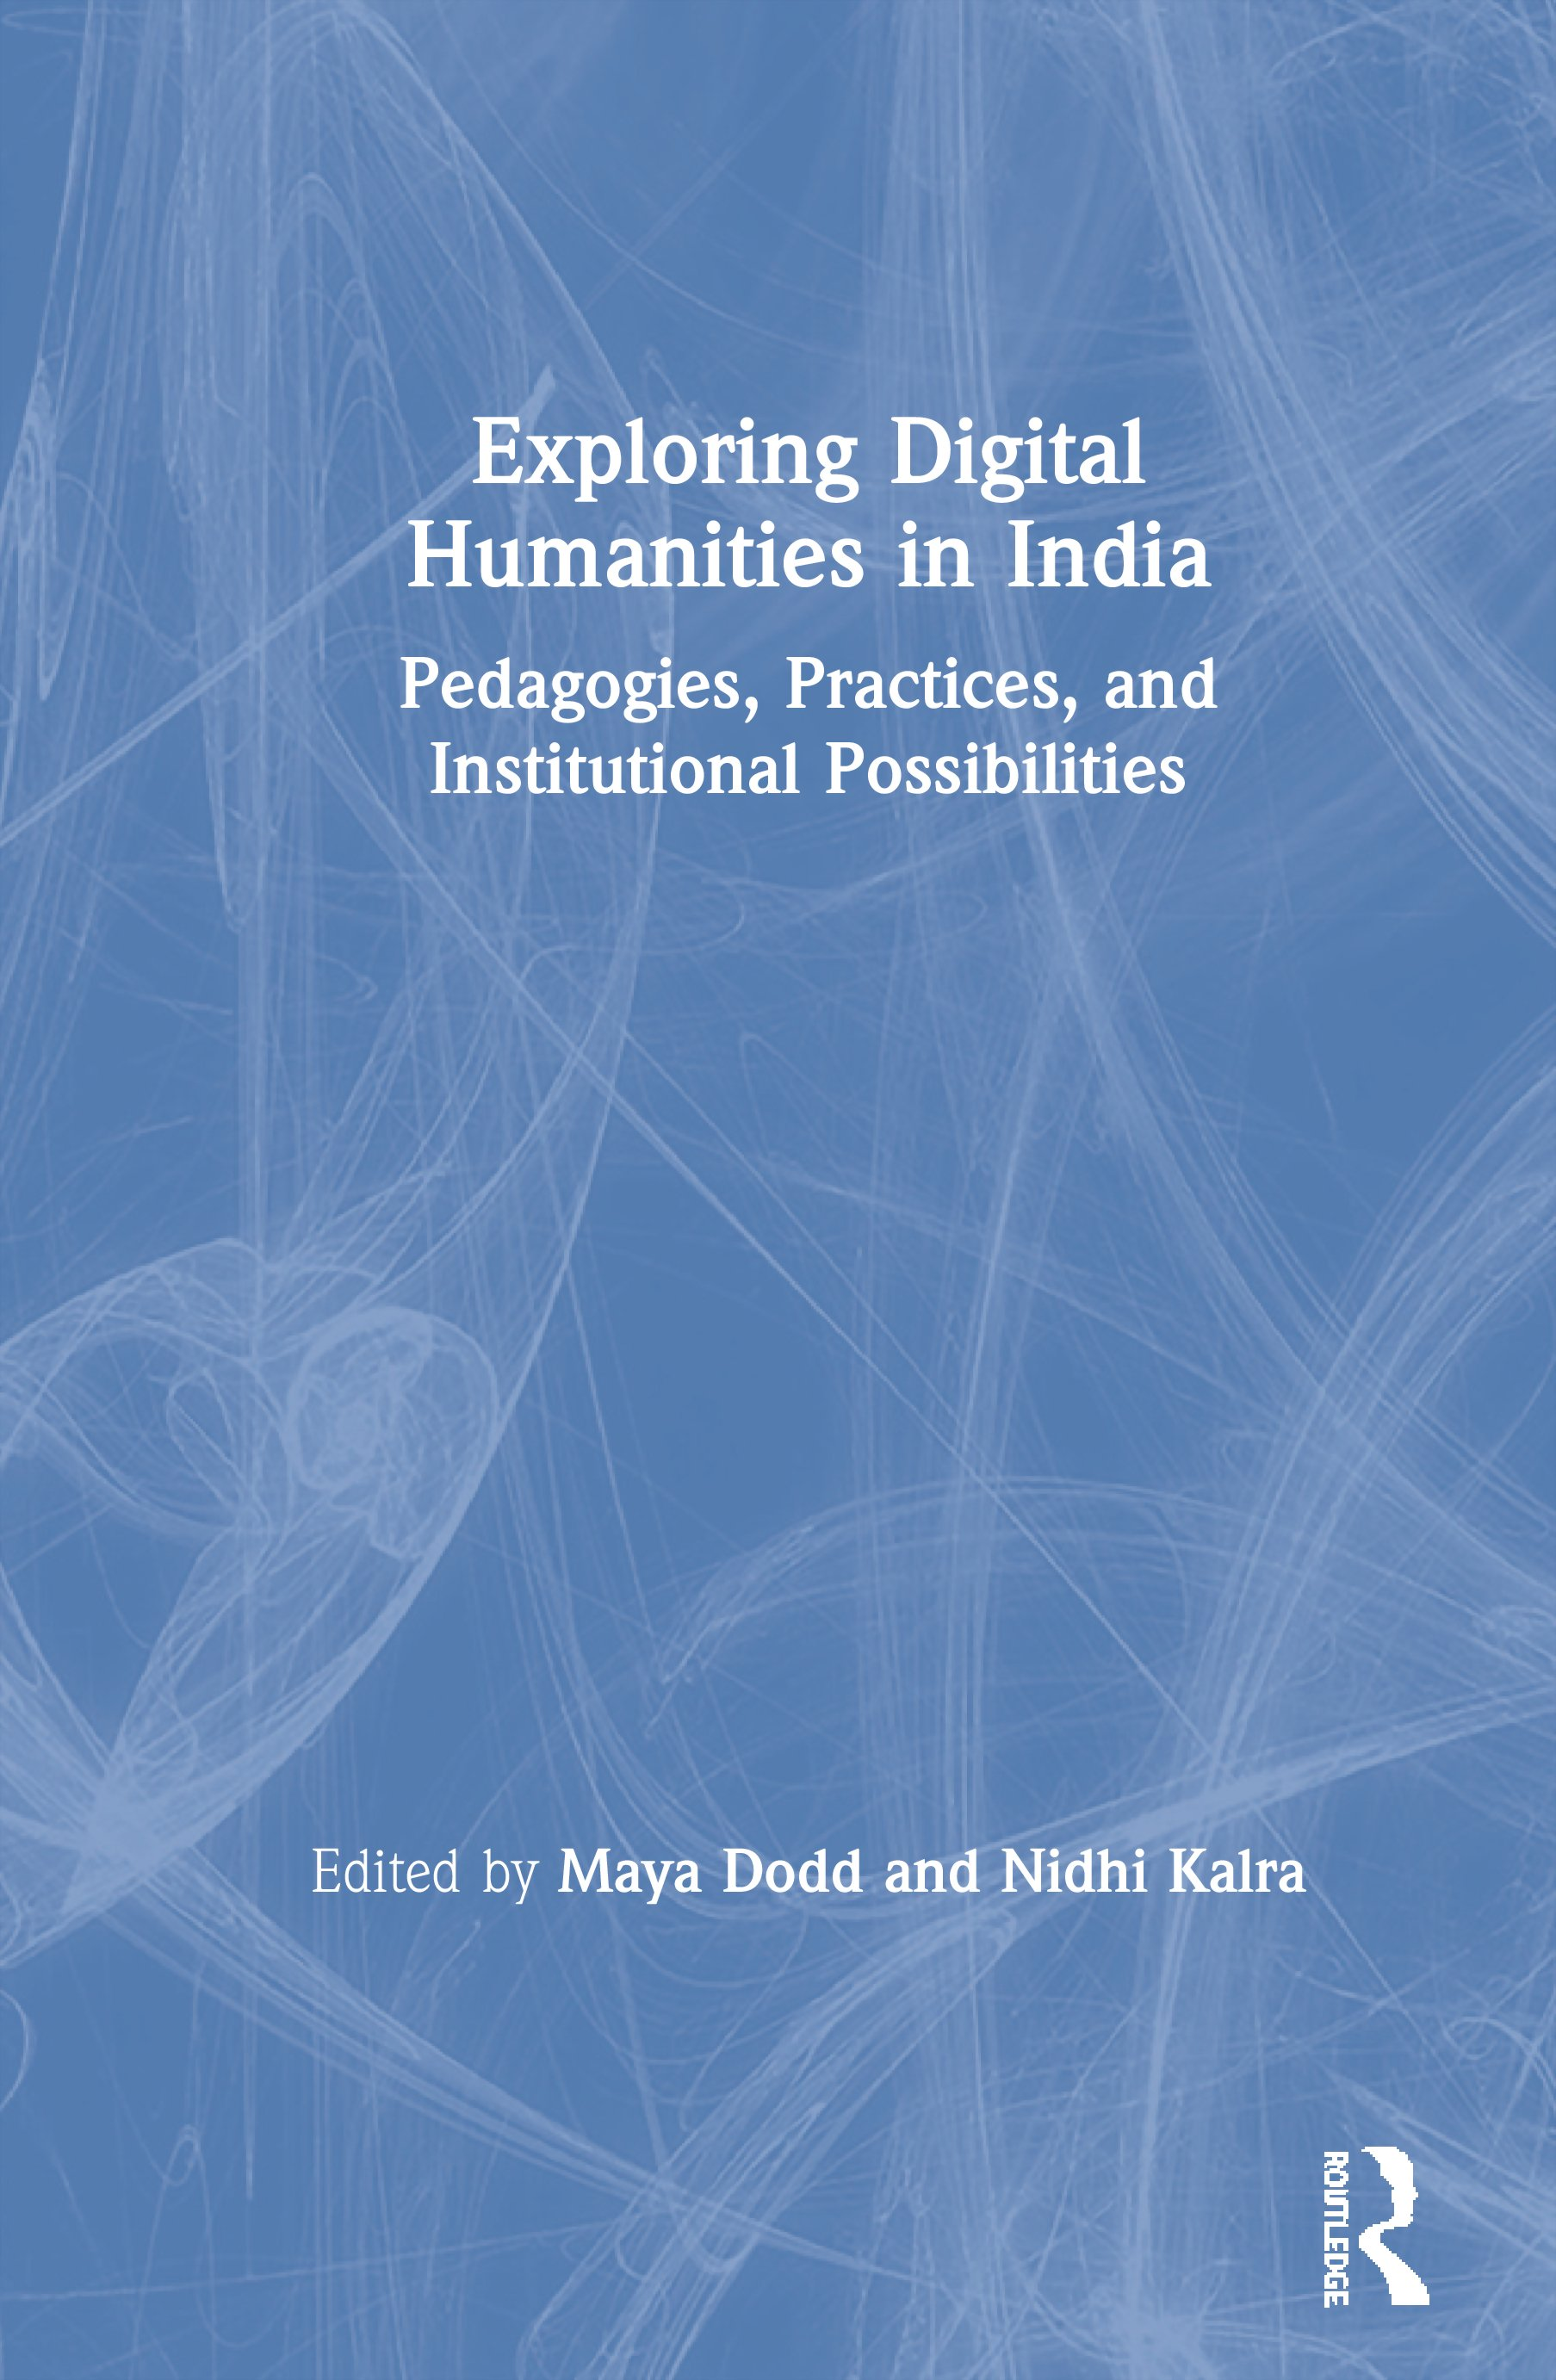 Exploring Digital Humanities in India: Pedagogies, Practices, and Institutional Possibilities book cover